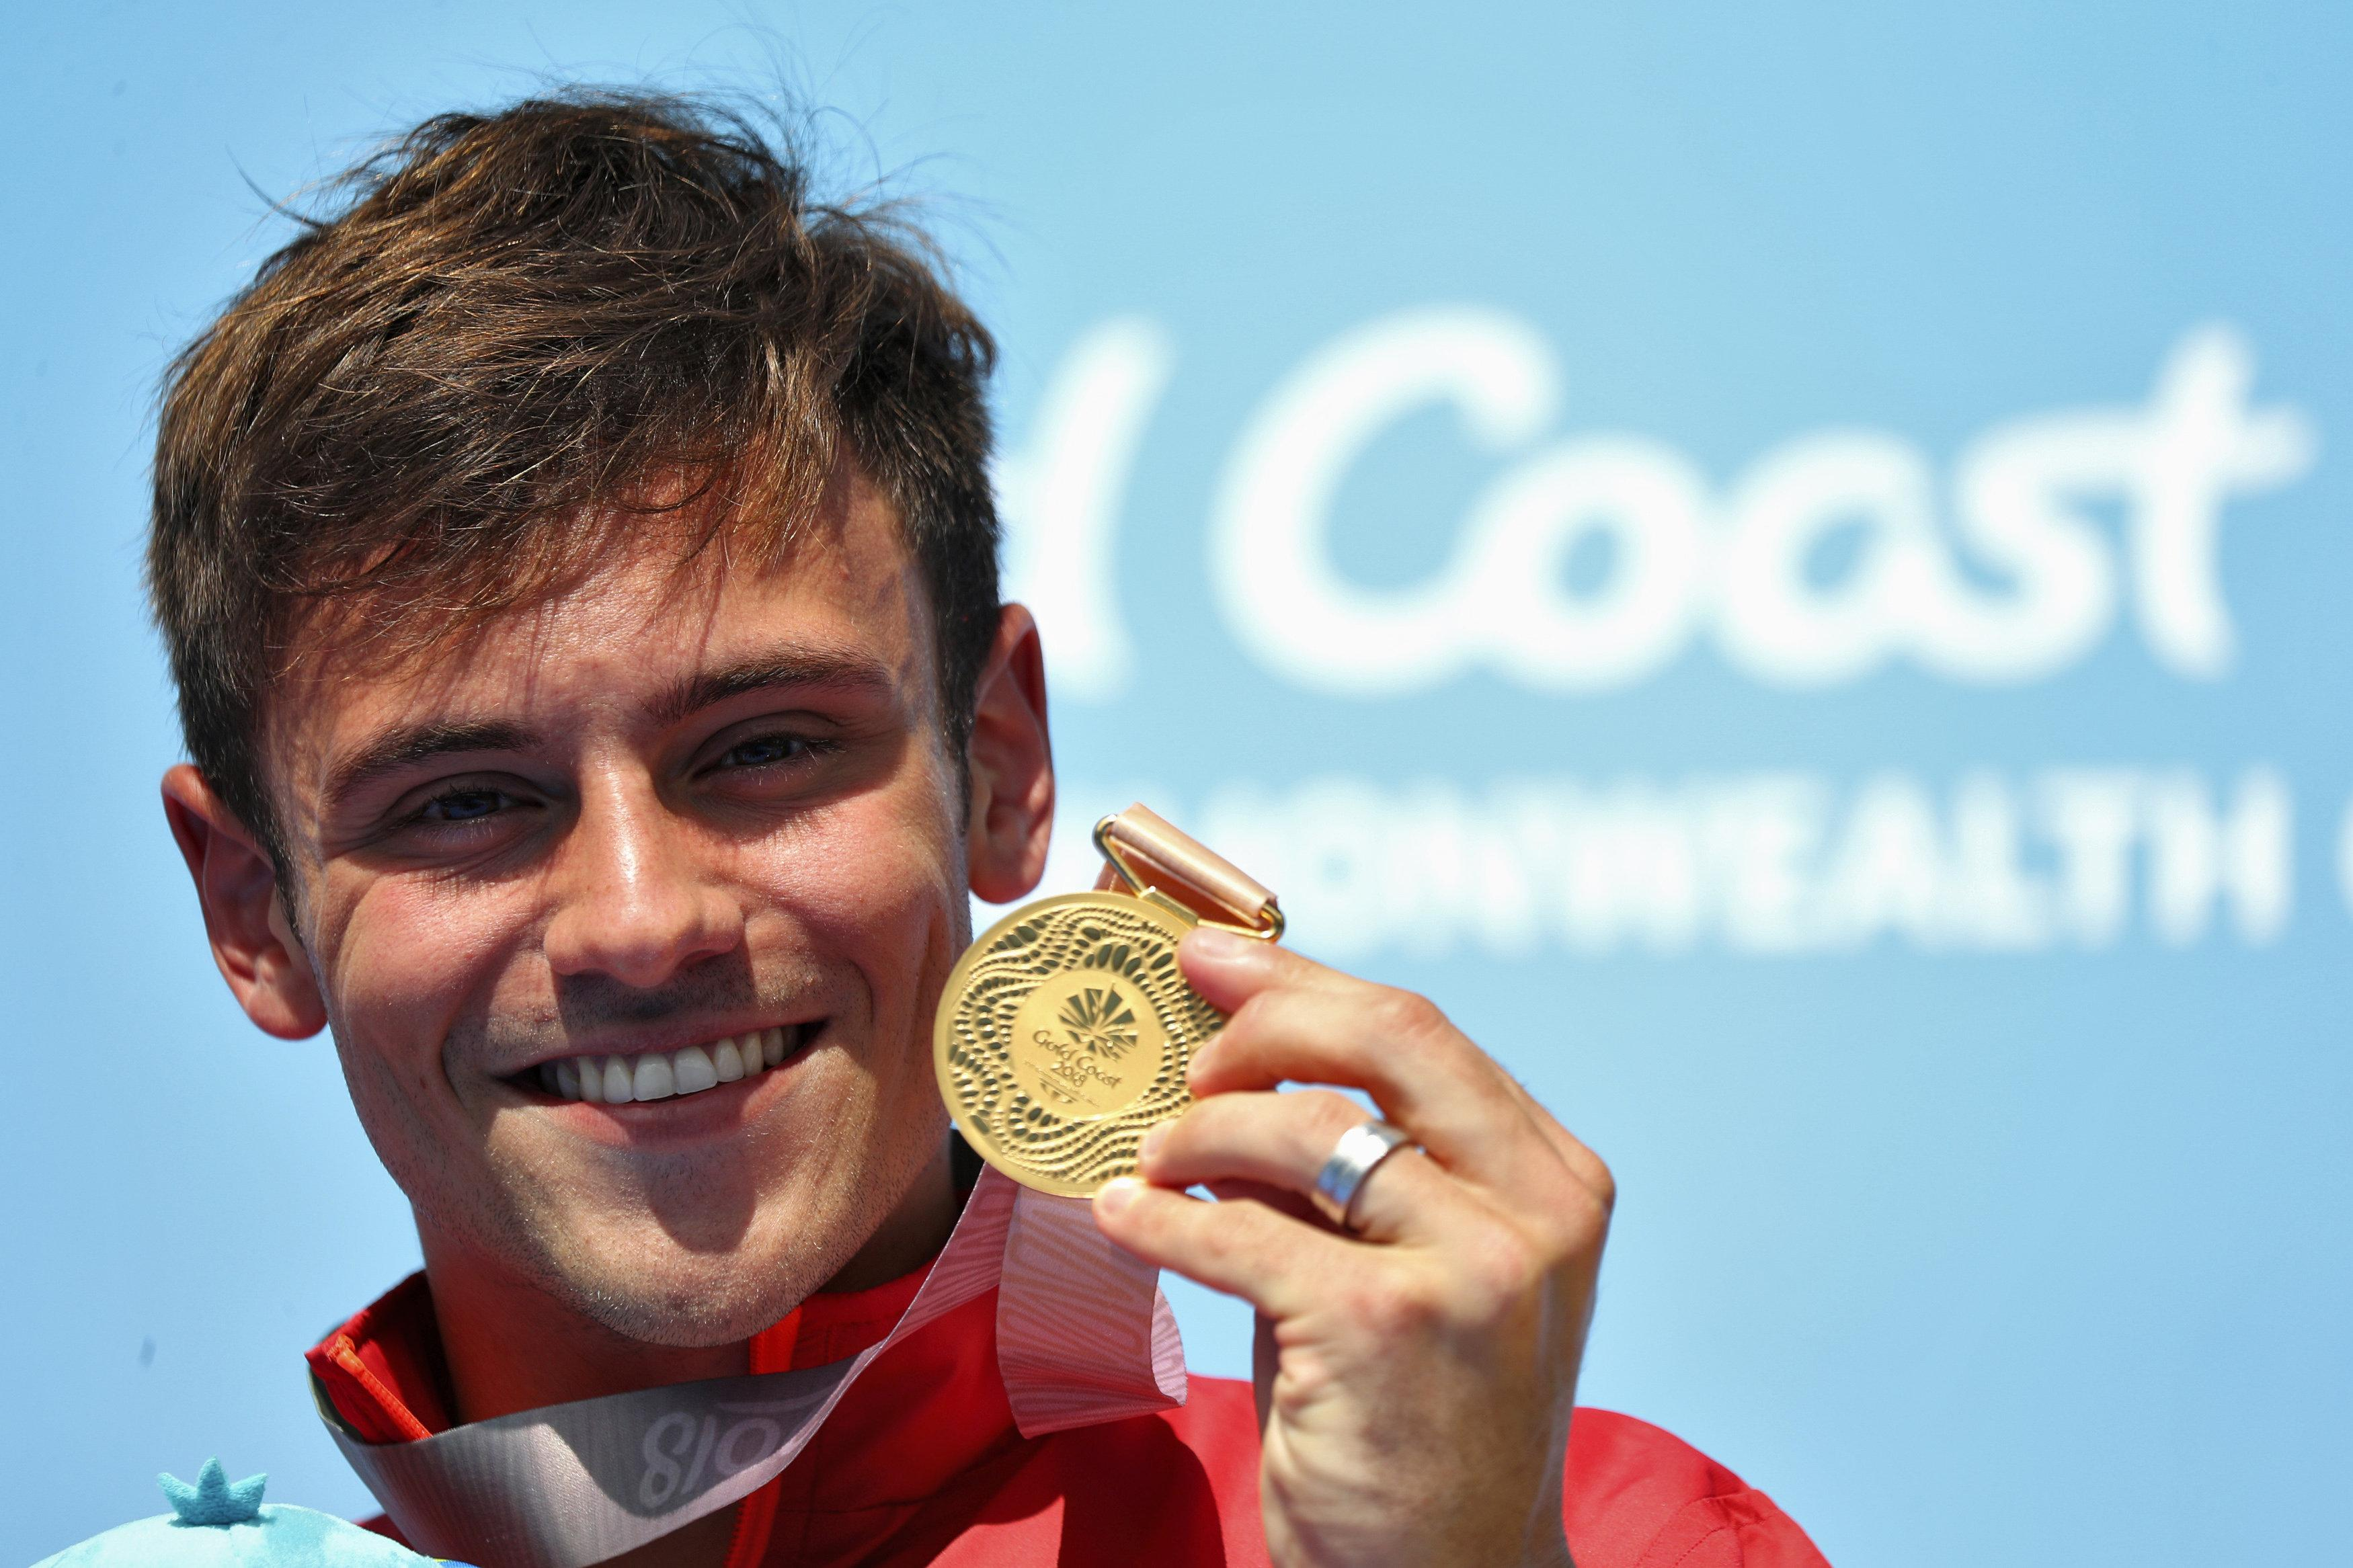 Daley won gold in 2018 at the Commonwealth Games